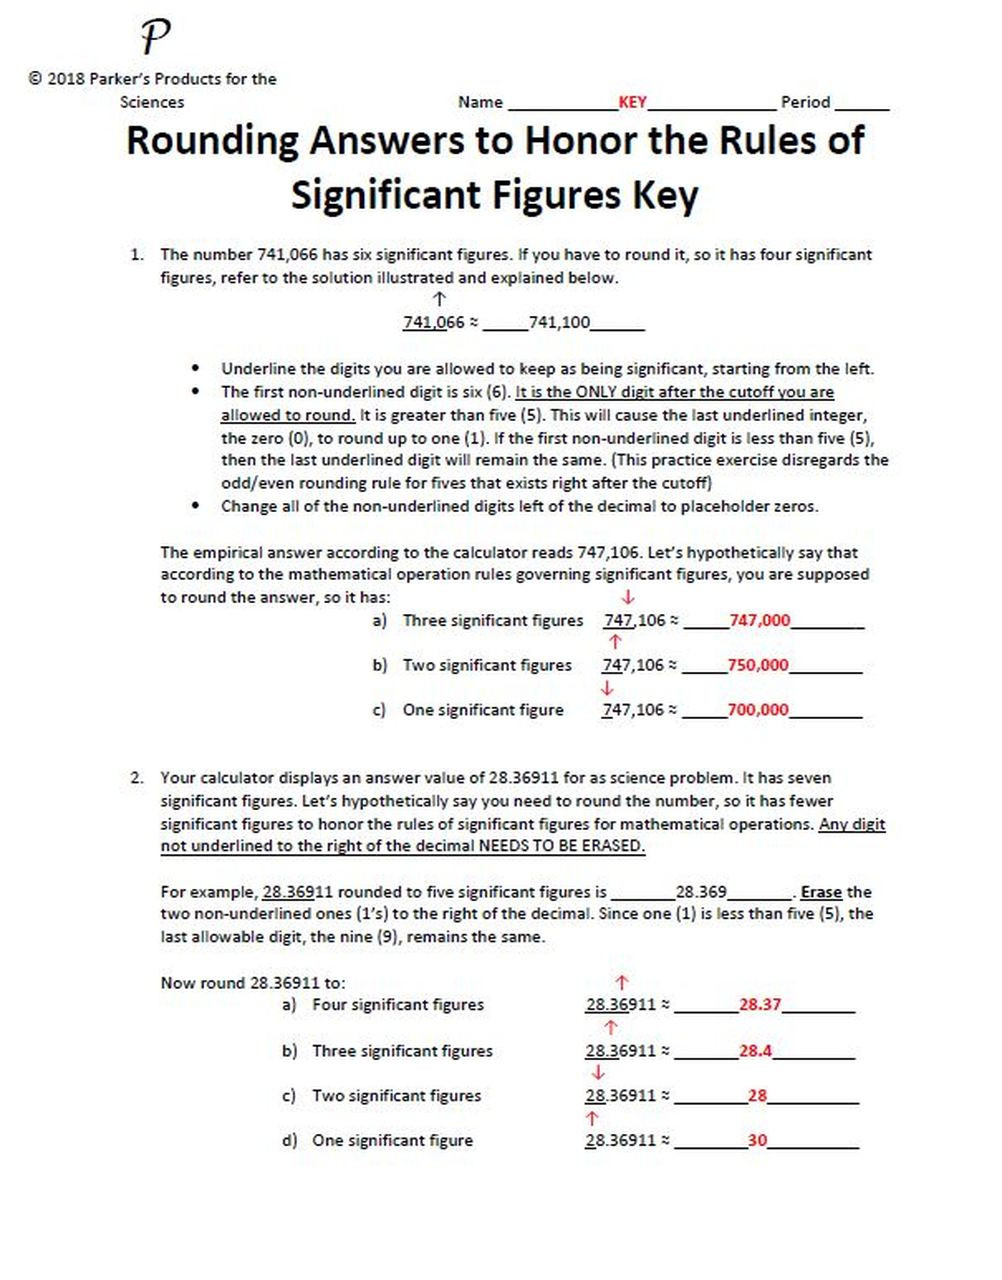 Significant Figures Practice Worksheet Rounding Numbers to Honor the Rules Of Significant Figures Practice Worksheet